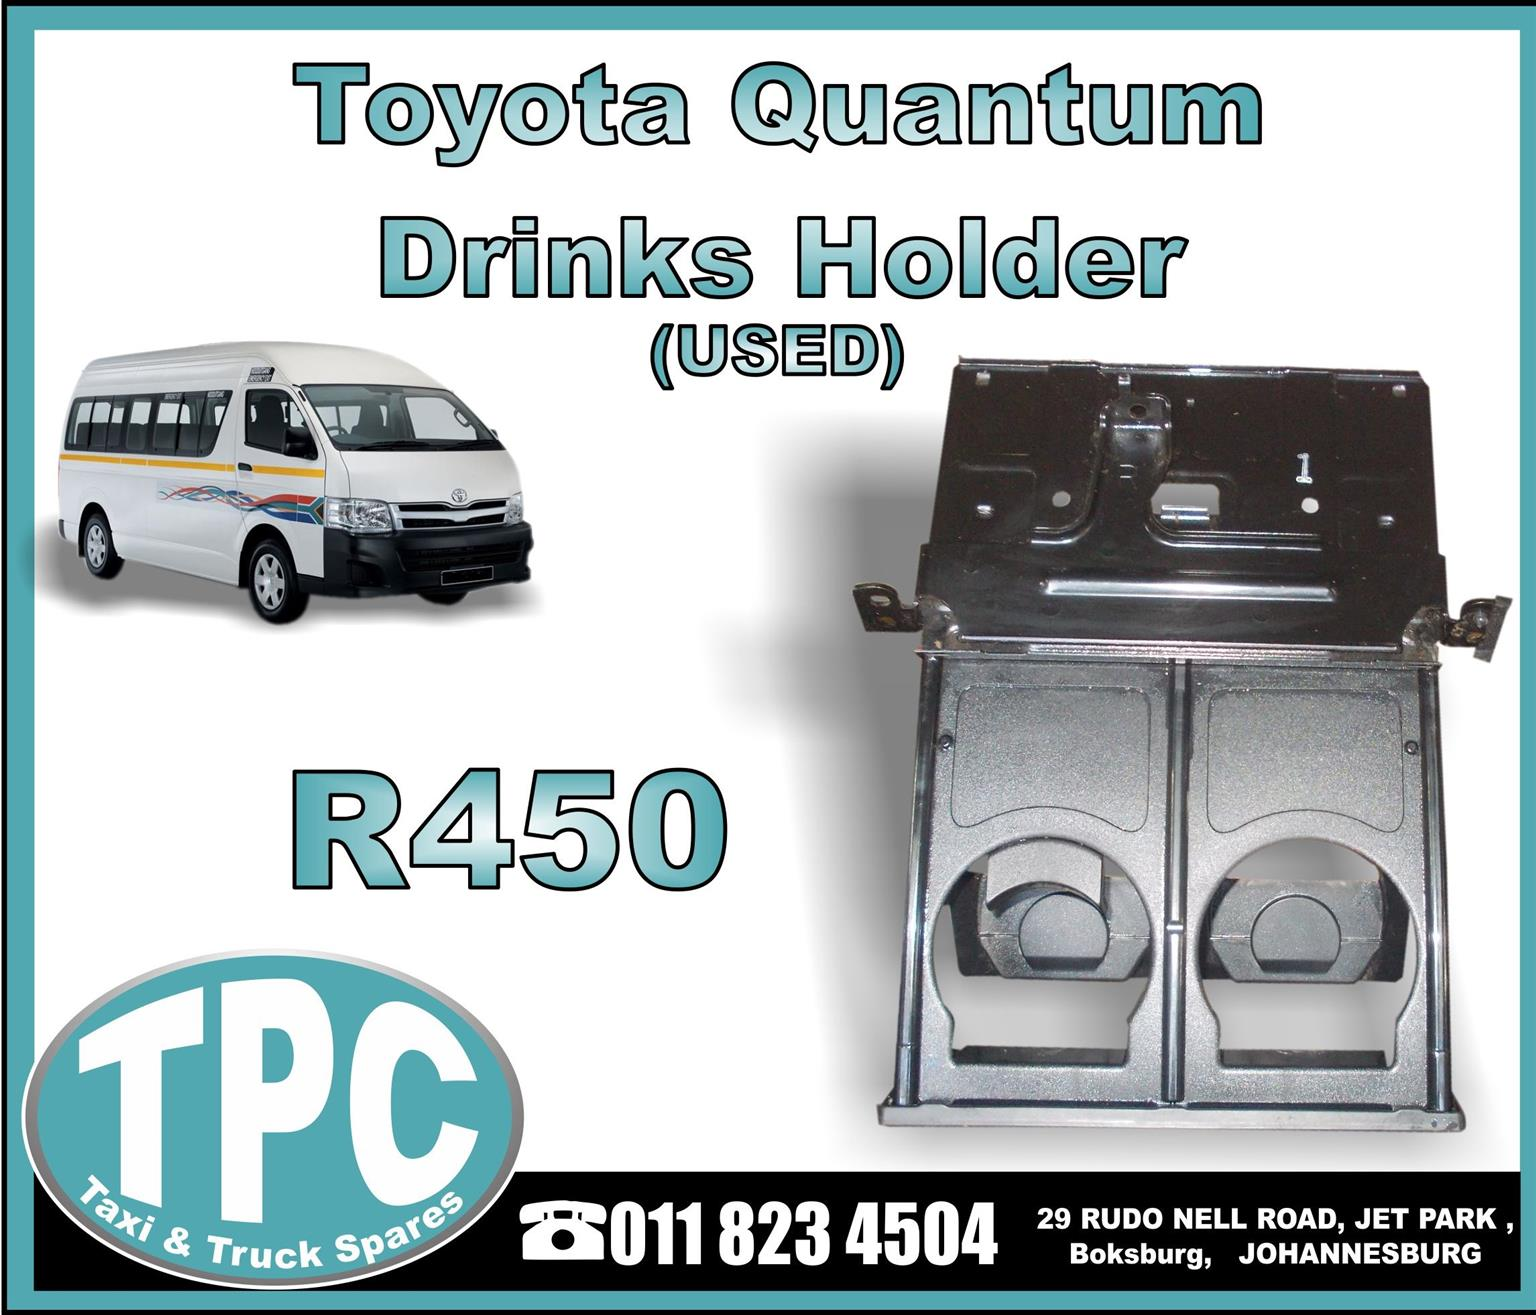 Toyota Quantum Drinks Holder - USED - New And Used Replacement Taxi Parts - TPC.